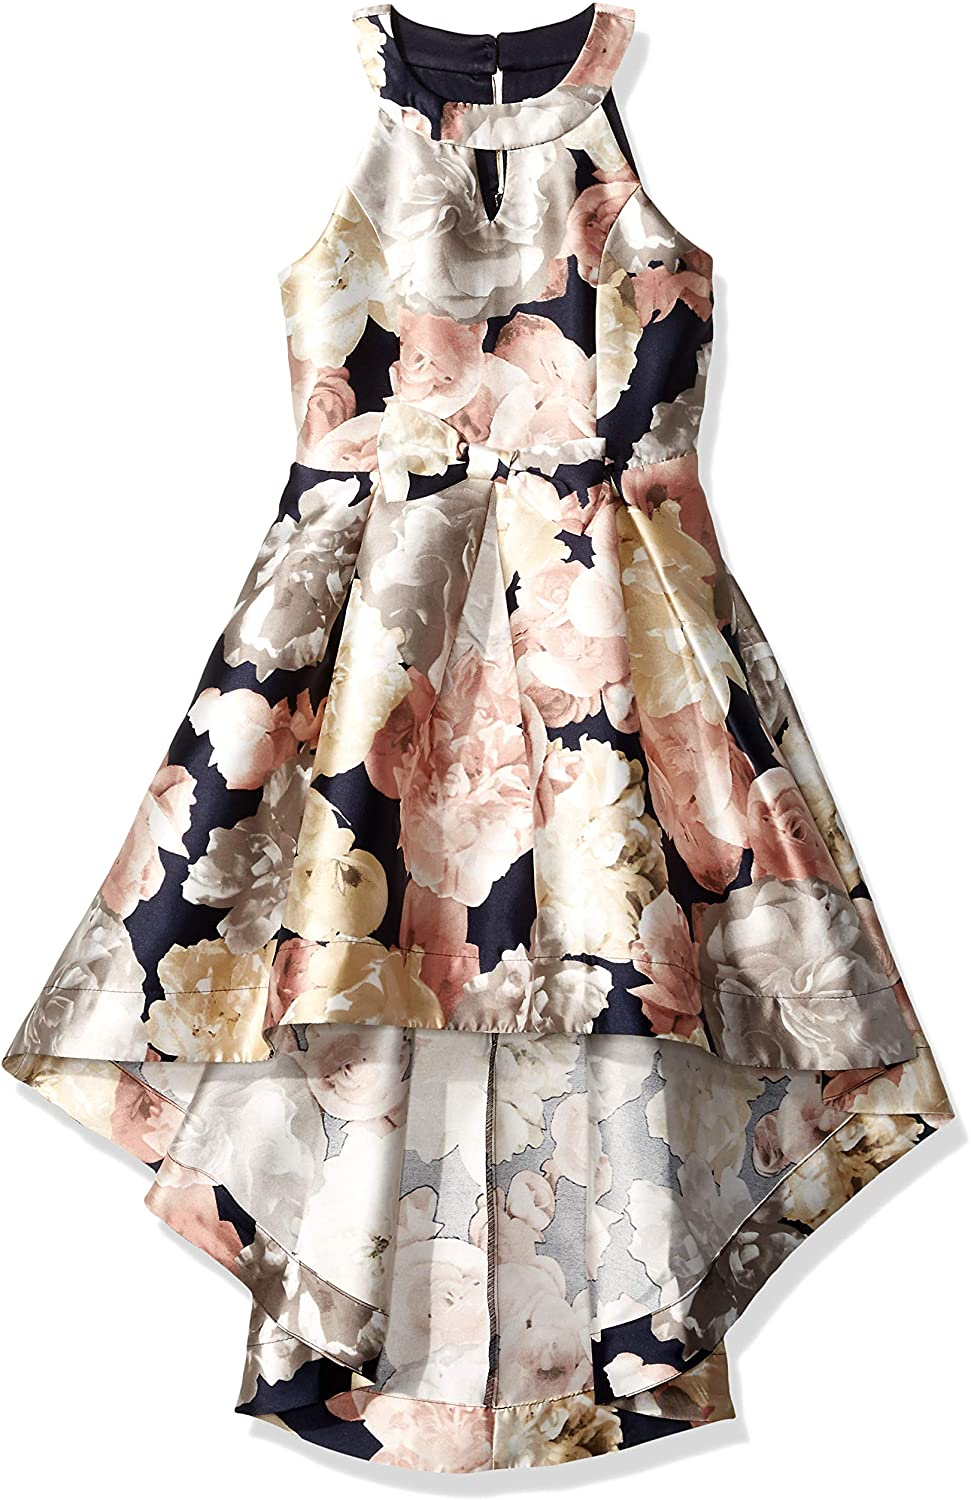 Speechless Sales for sale Girls' Sleeveless High-Low Max 76% OFF Dress Taffeta Party